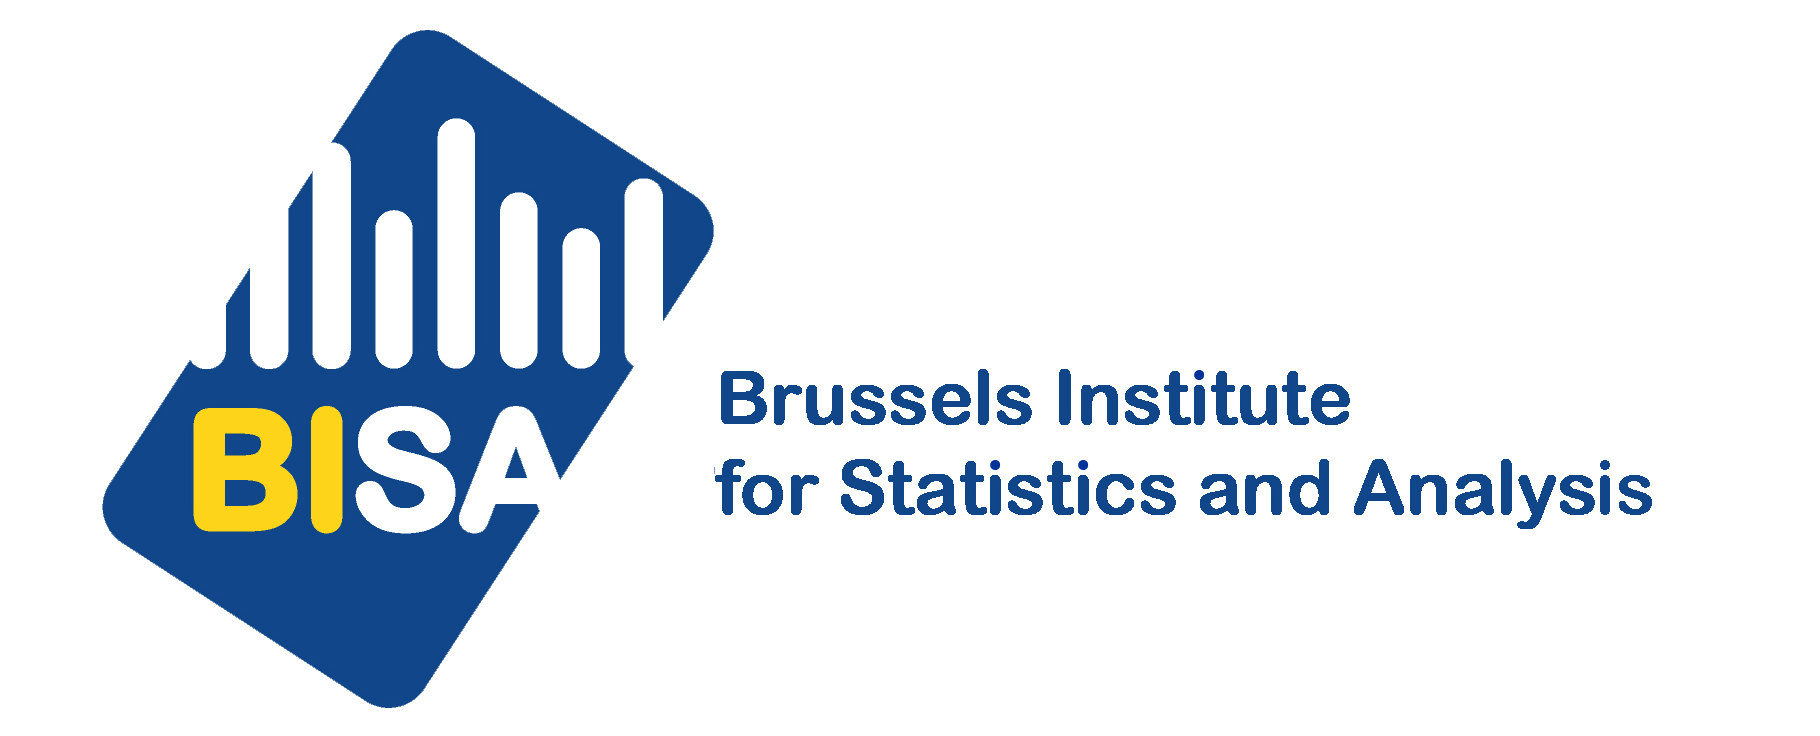 Brussels Institute for Statistics and Analysis